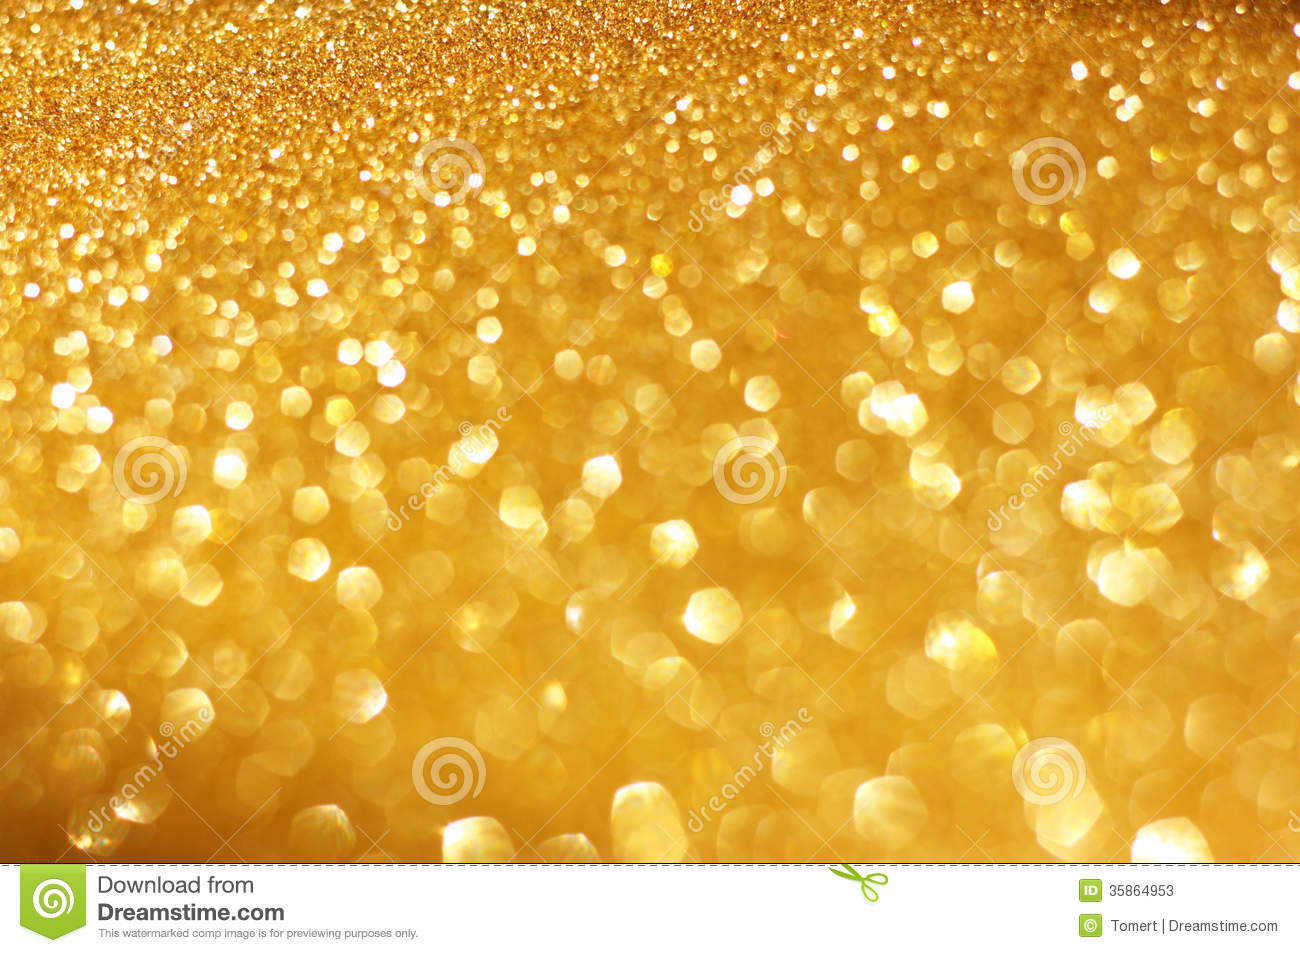 Silver and golden background of defocused abstract lights bokeh - Gold Spring Or Summer Background Elegant Abstract